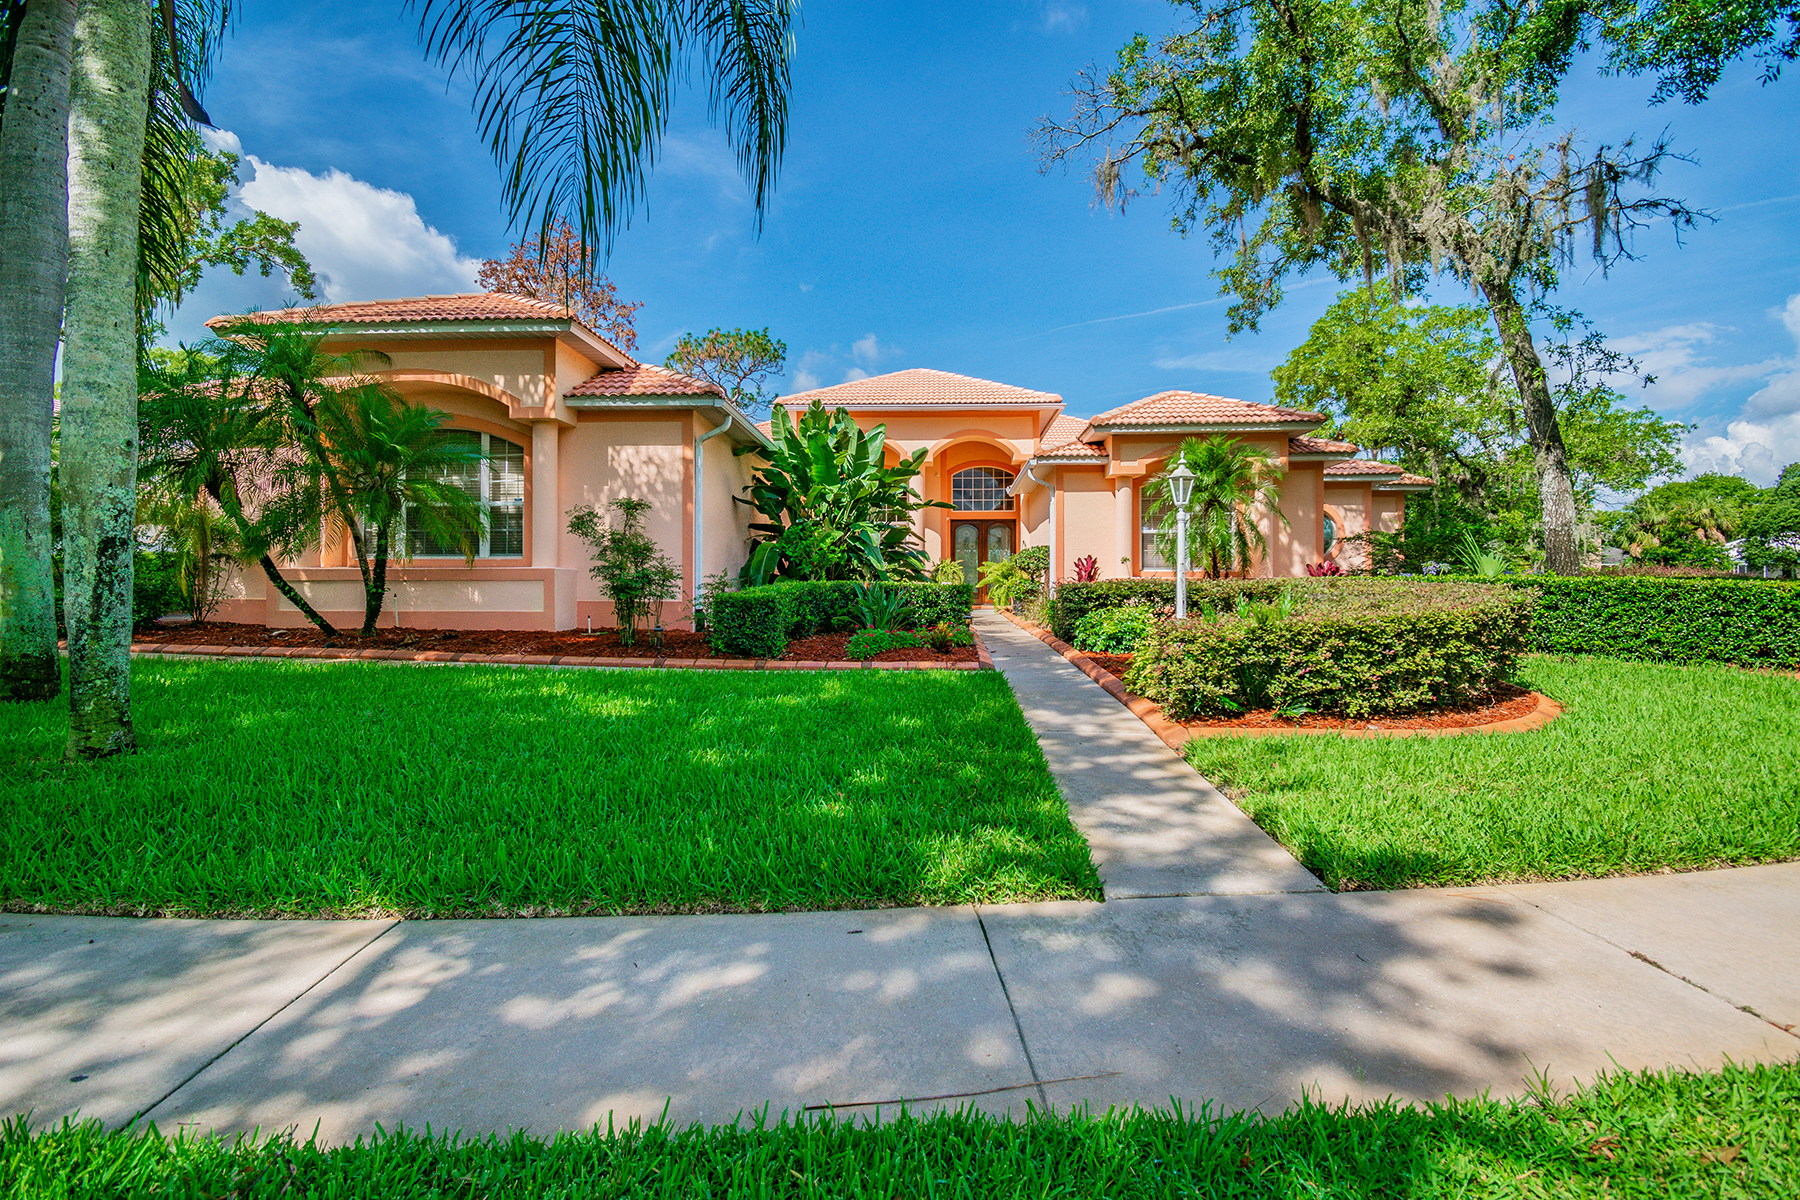 Single Family Homes for Sale at RIVER HILLS 3801 S Nine Dr Valrico, Florida 33596 United States